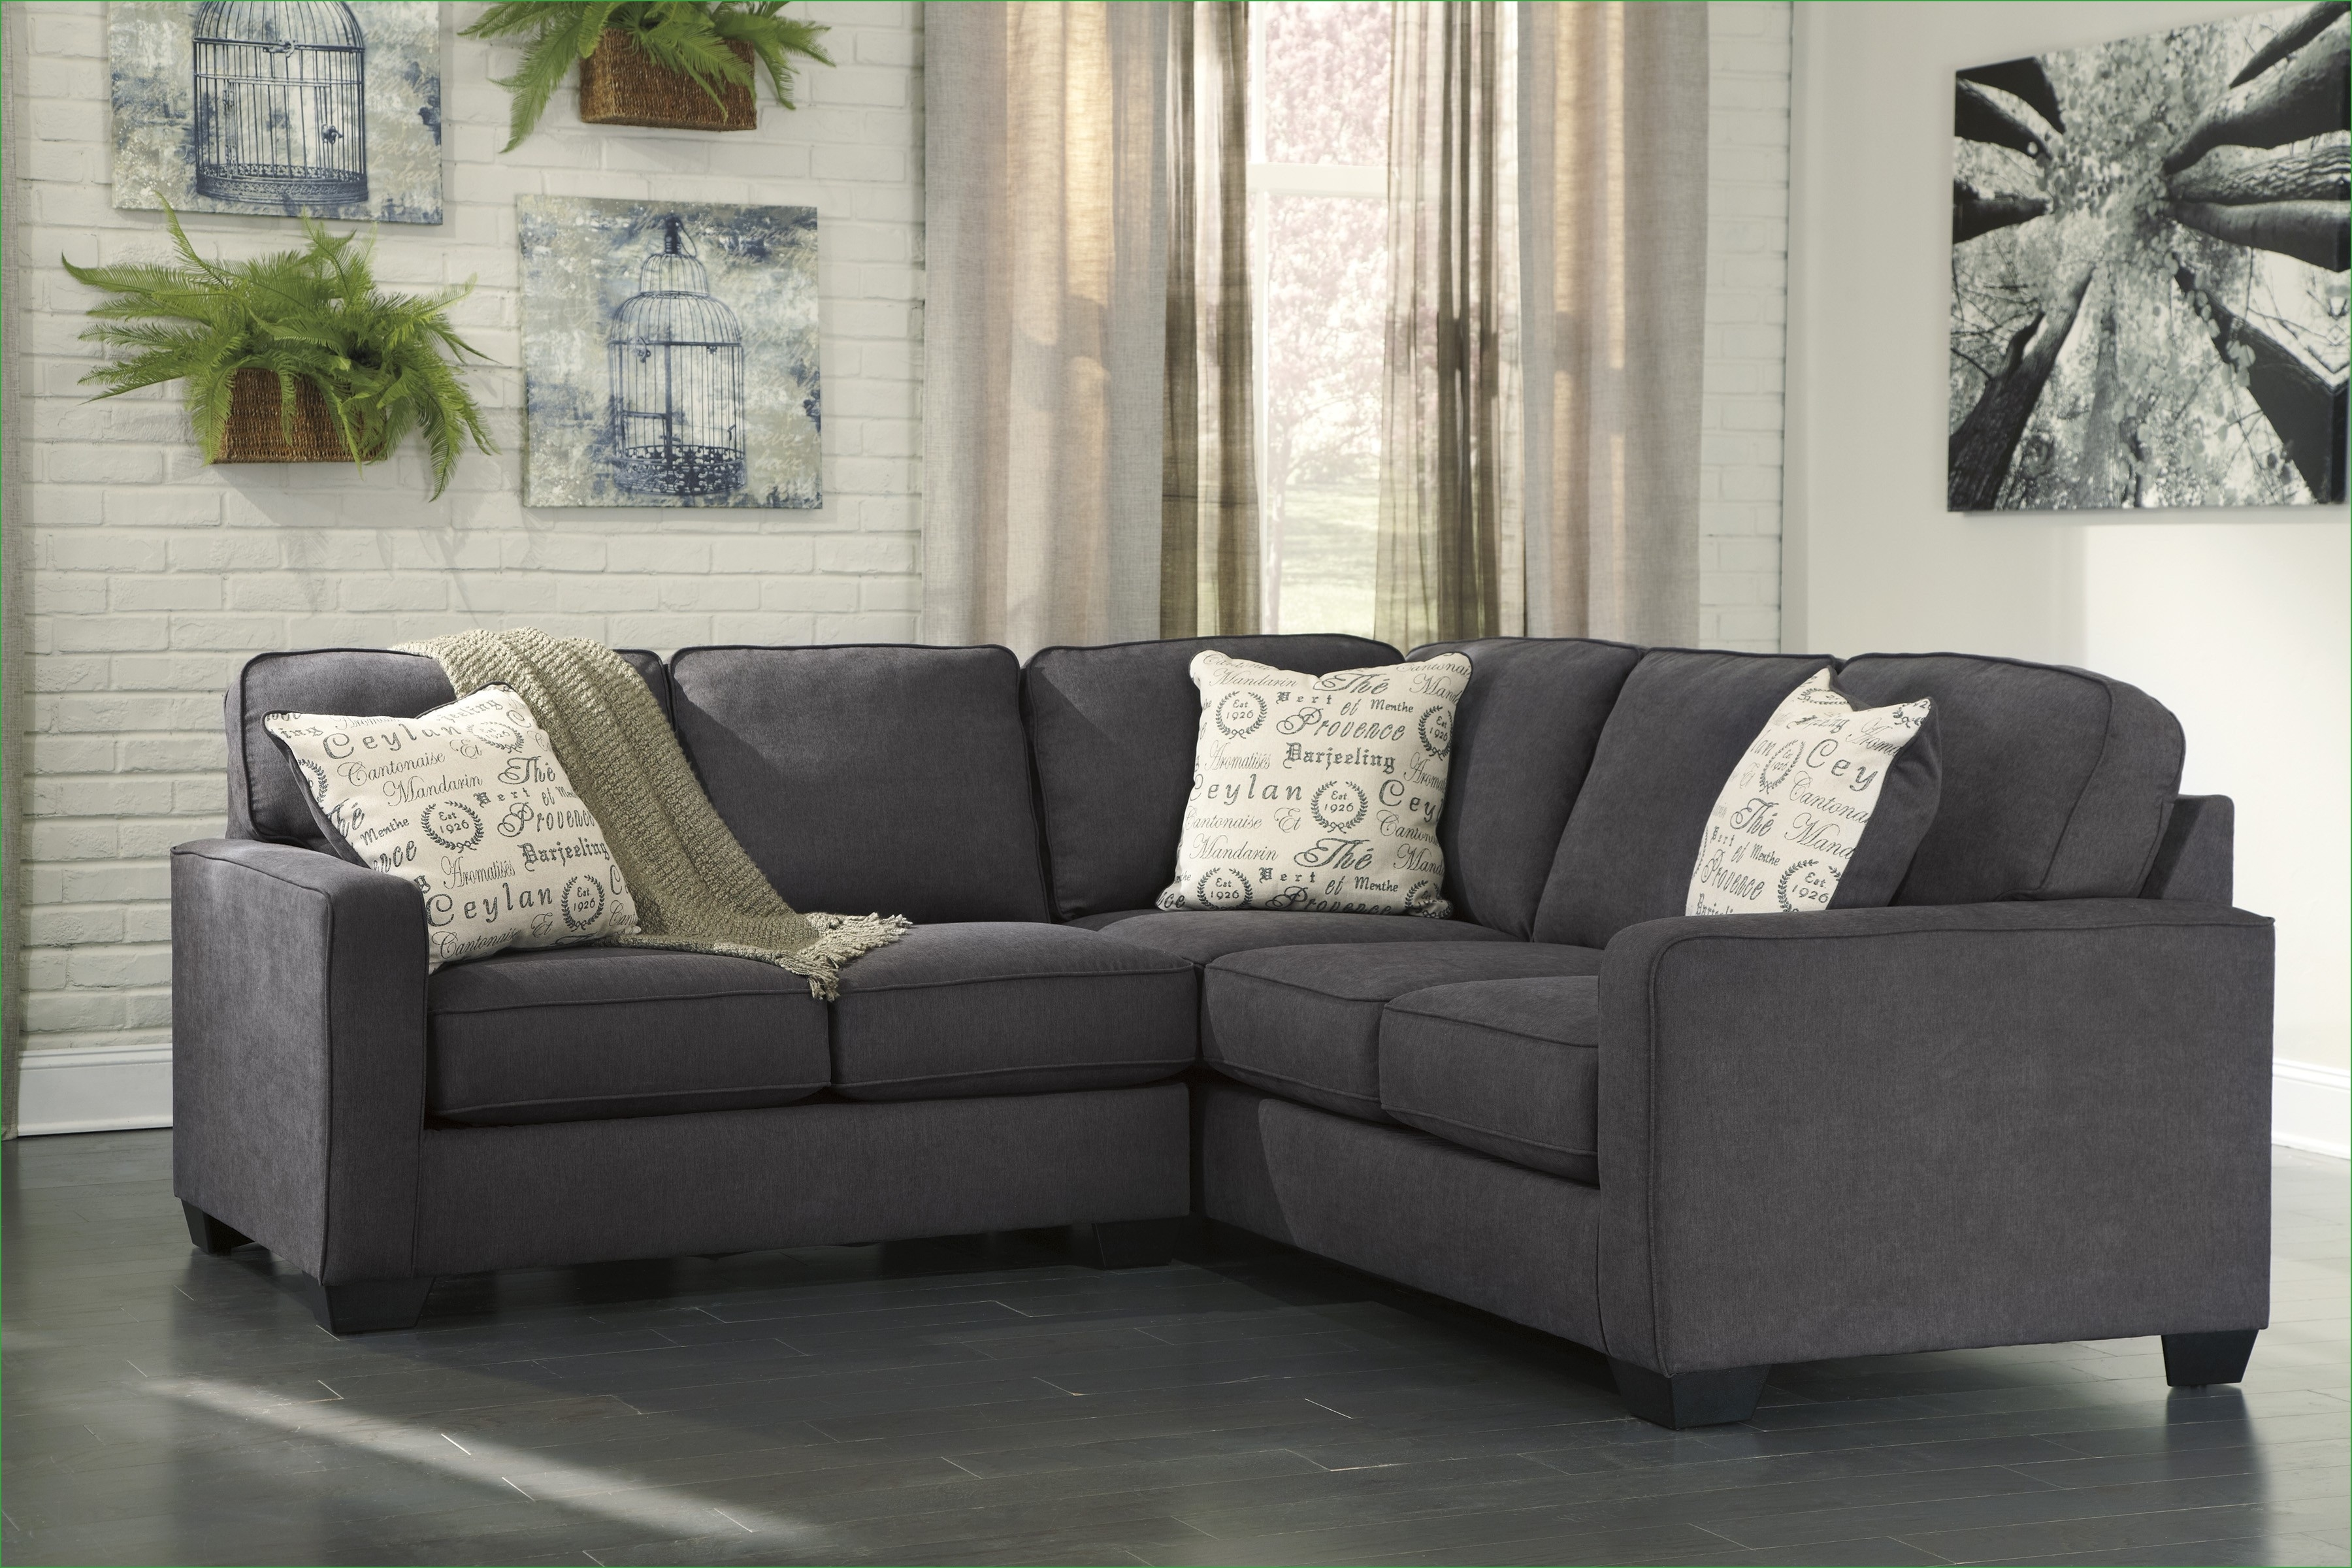 Simple Small 2 Piece Sectional Sofa 58 For Your American Made With Regard To American Made Sectional Sofas (#12 of 12)